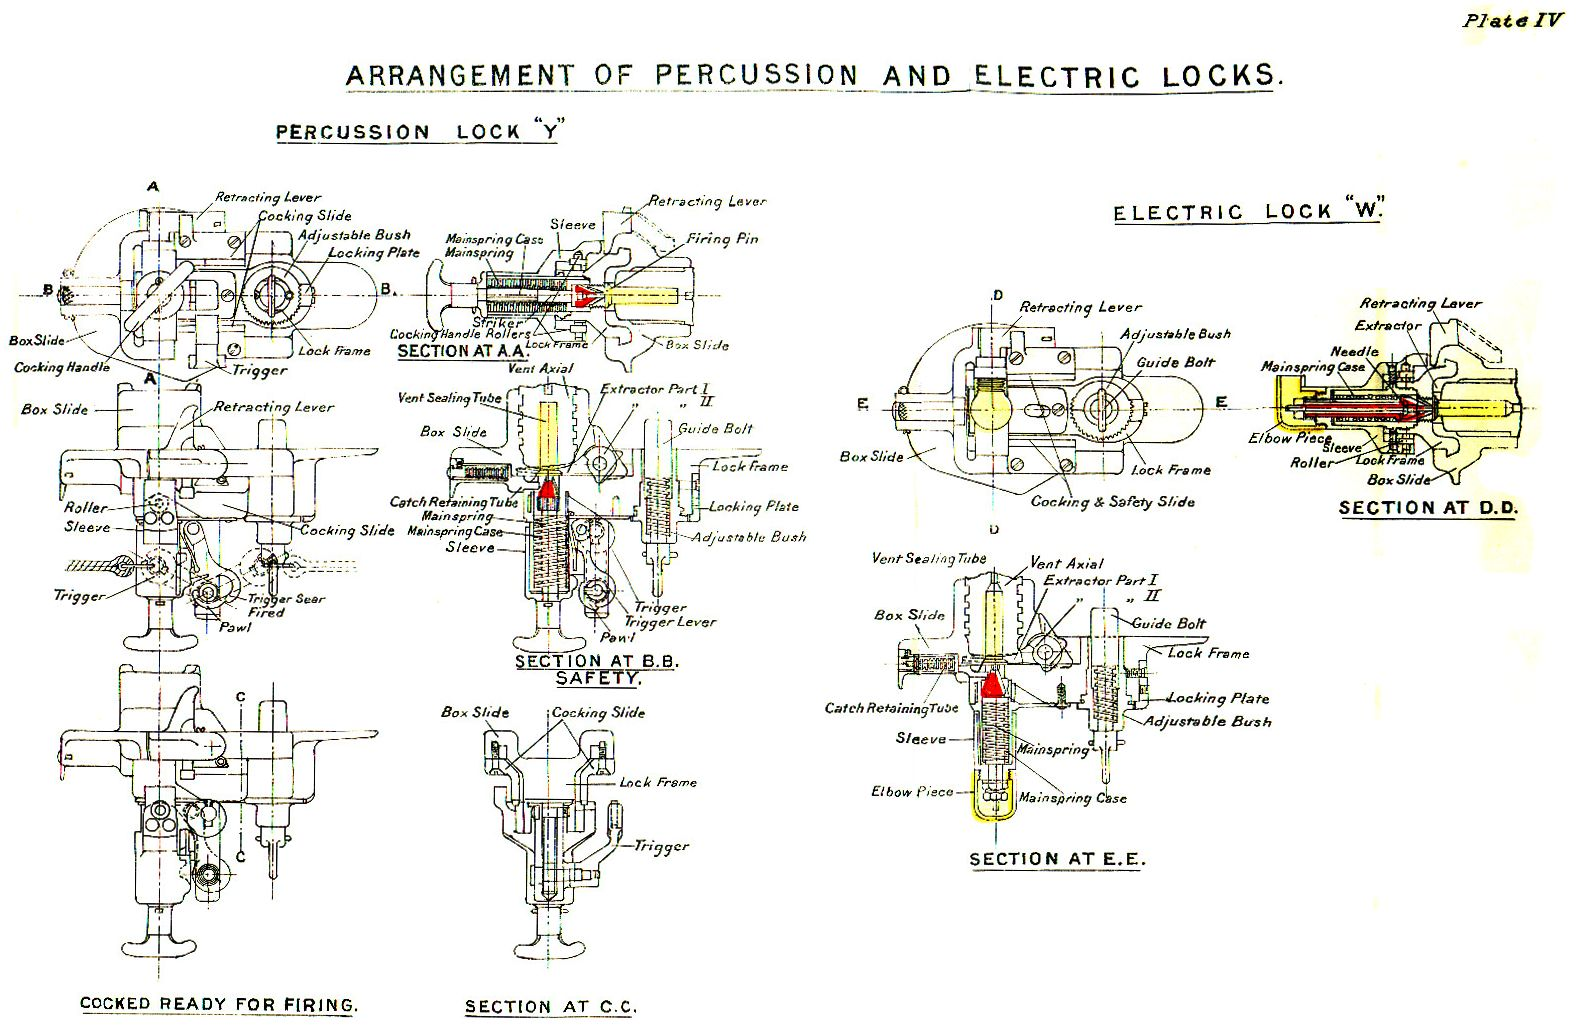 guns schematics with File Bl 4 Inch Mk Vii Gun Percussion  26 Electric Locks Diagram on 380309 Lockheed P 38 Lo Lightning additionally Index furthermore Saint Series further Retirement Strategies And The Maginot Line together with Total Screens.